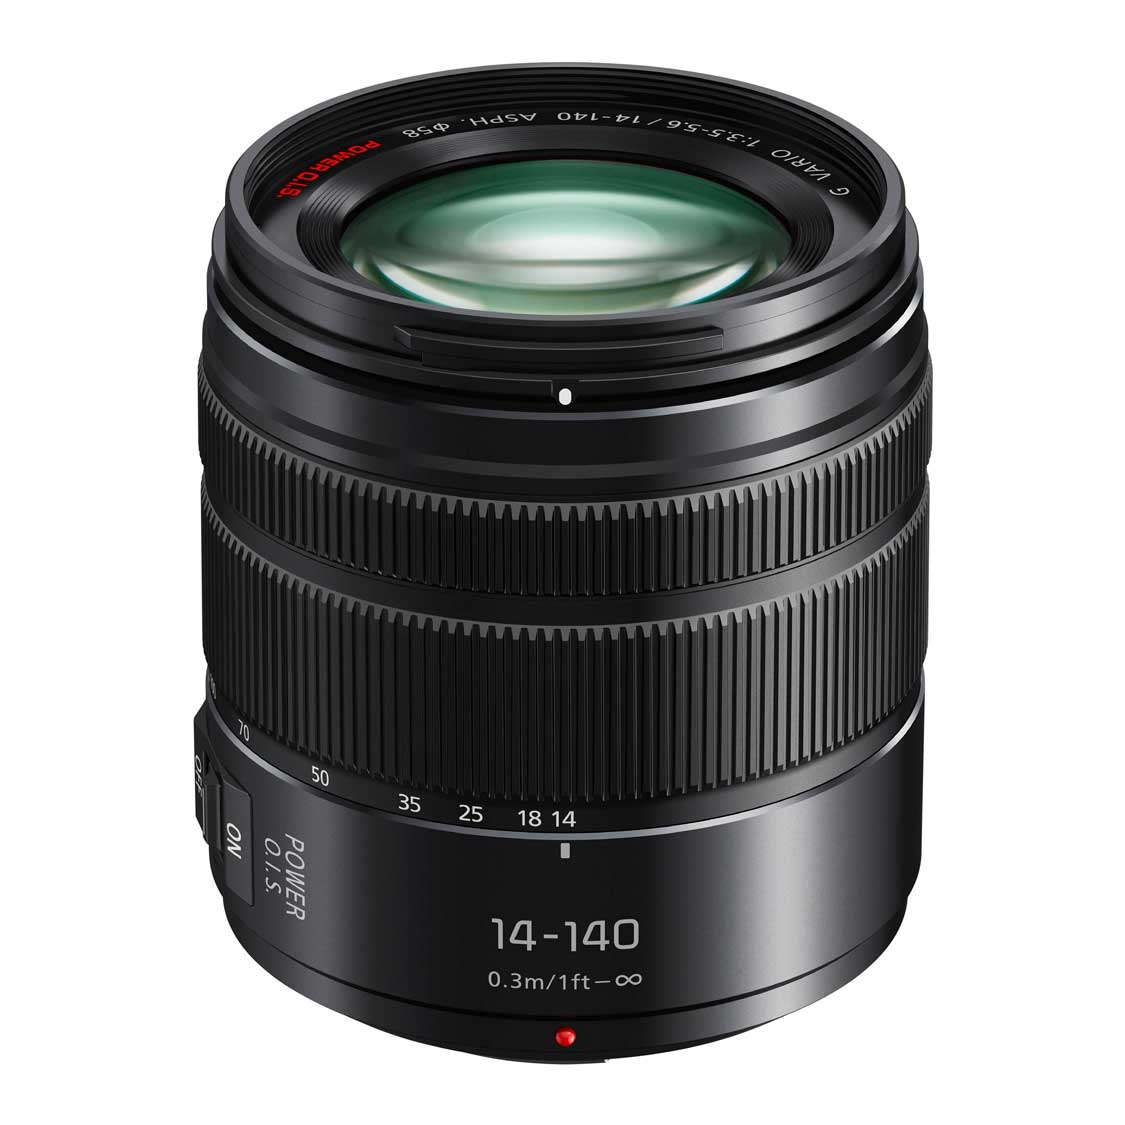 Panasonic 14-140mm F3.5-5.6 II OIS Lens (Micro Four Thirds)